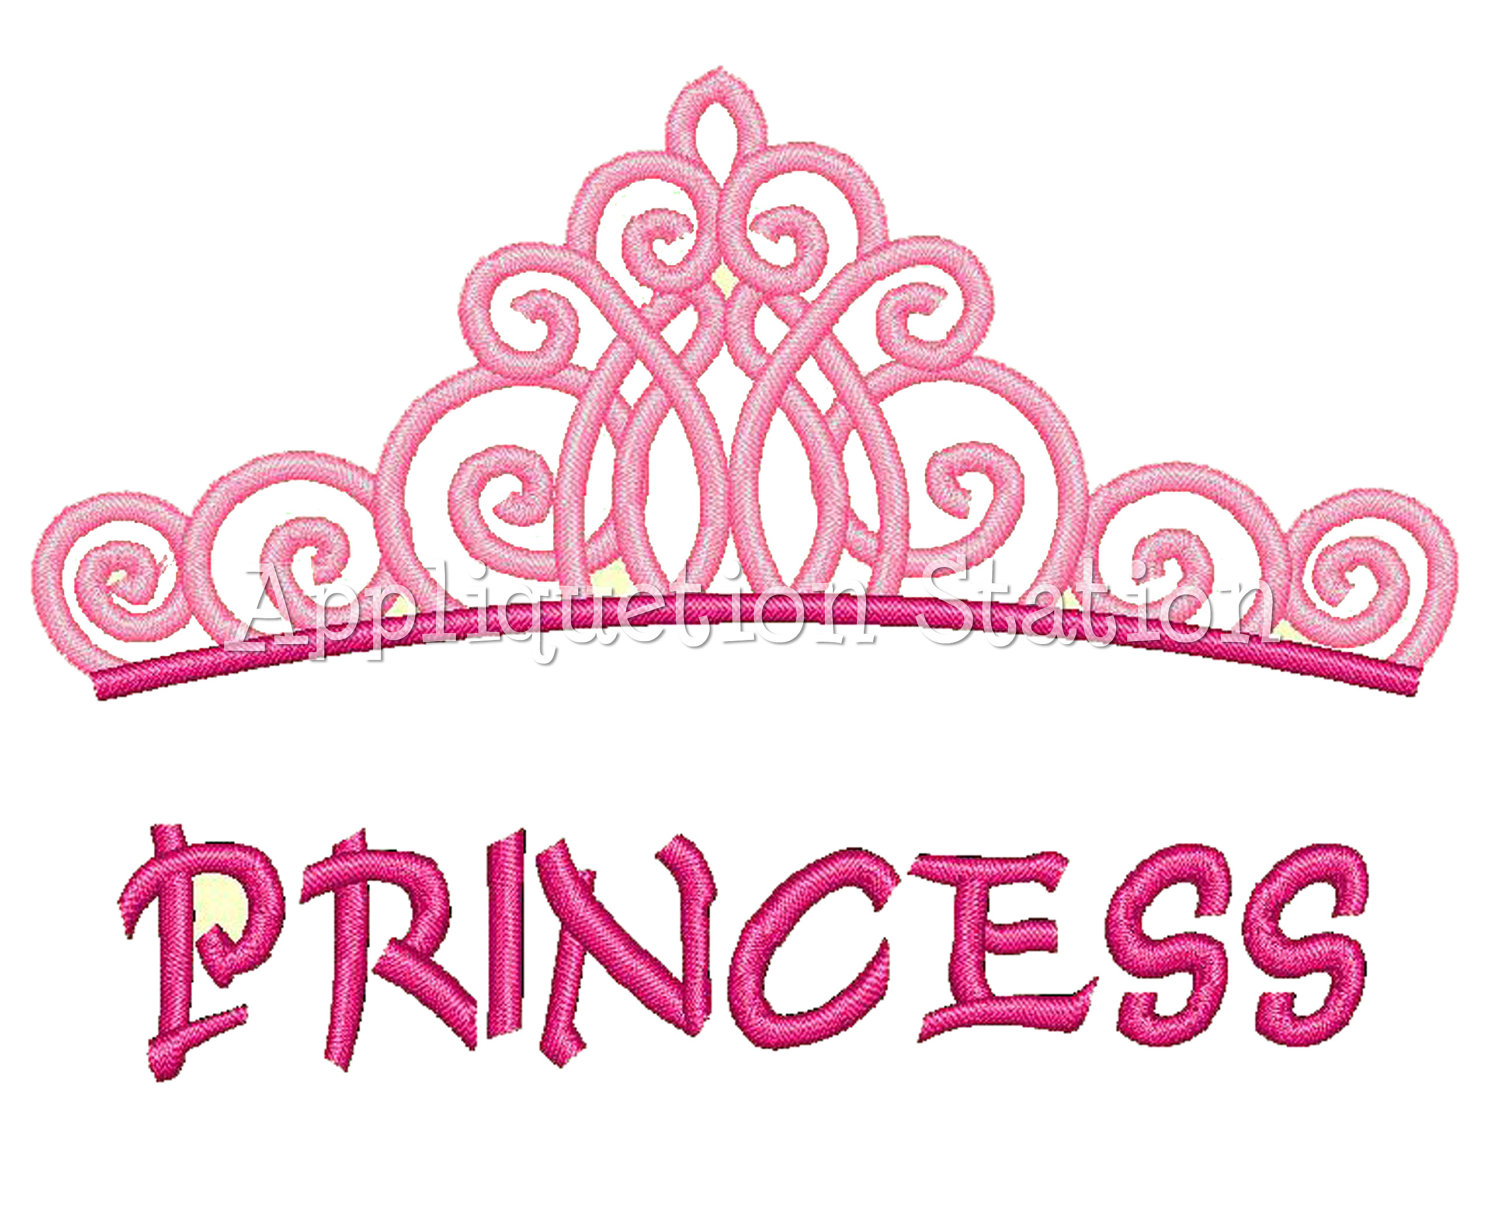 Clip Art Princess Tiara Clipart princess tiara clipart kid tiaras and crowns clip art images thecelebritypix